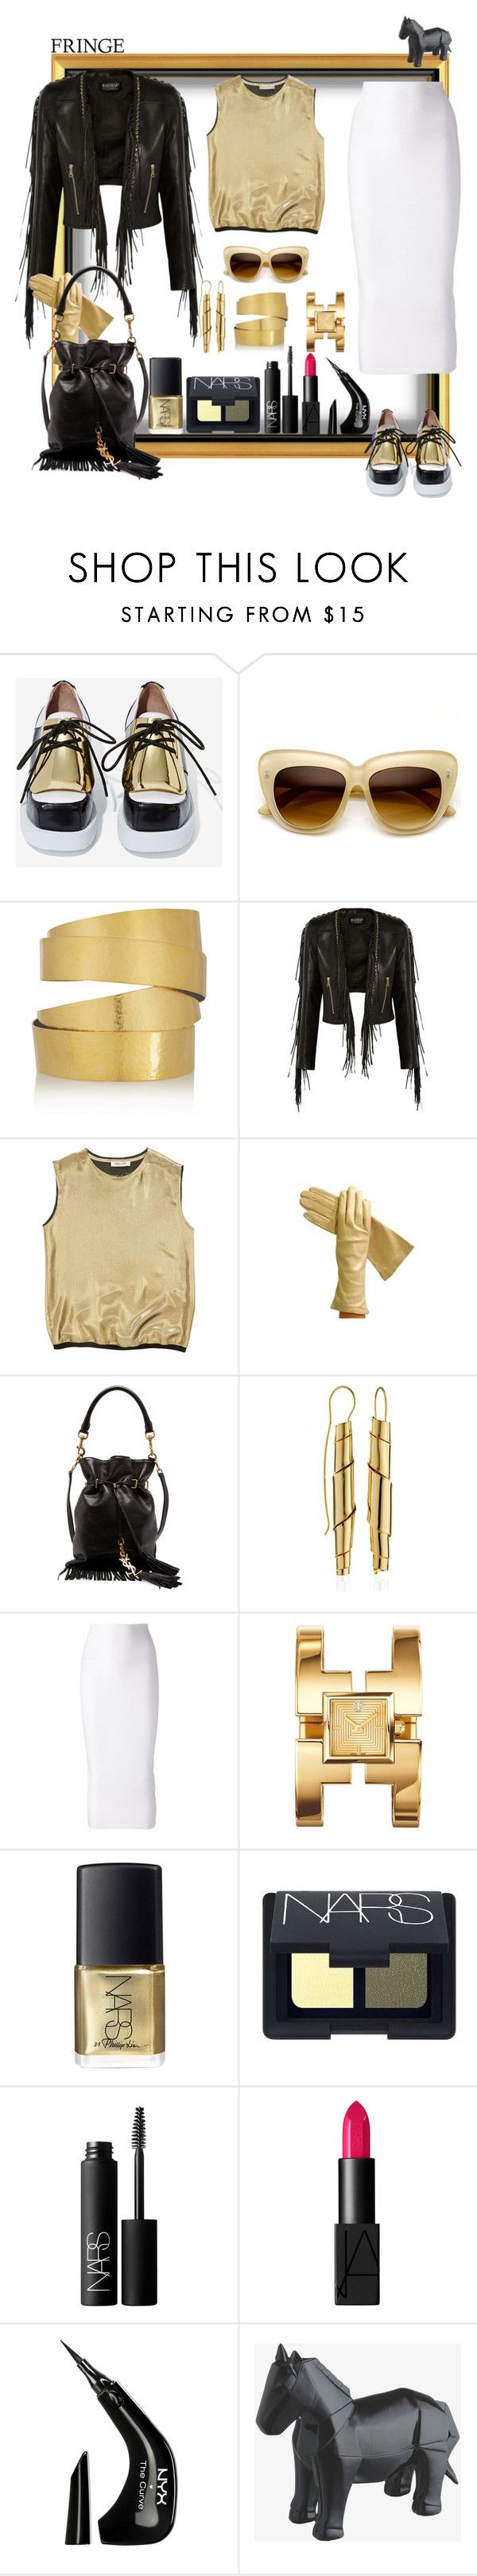 """Can you help me? It might be a bit difficult to get on the saddle!"" by ritva-harjula ❤ liked on Polyvore featuring Jeffrey Campbell, Hervé Van Der Straeten, Balmain, Organic by John Patrick, Yves Saint Laurent, Oblik Atelier, Cushnie Et Ochs, Tory Burch, NARS Cosmetics and NYX"